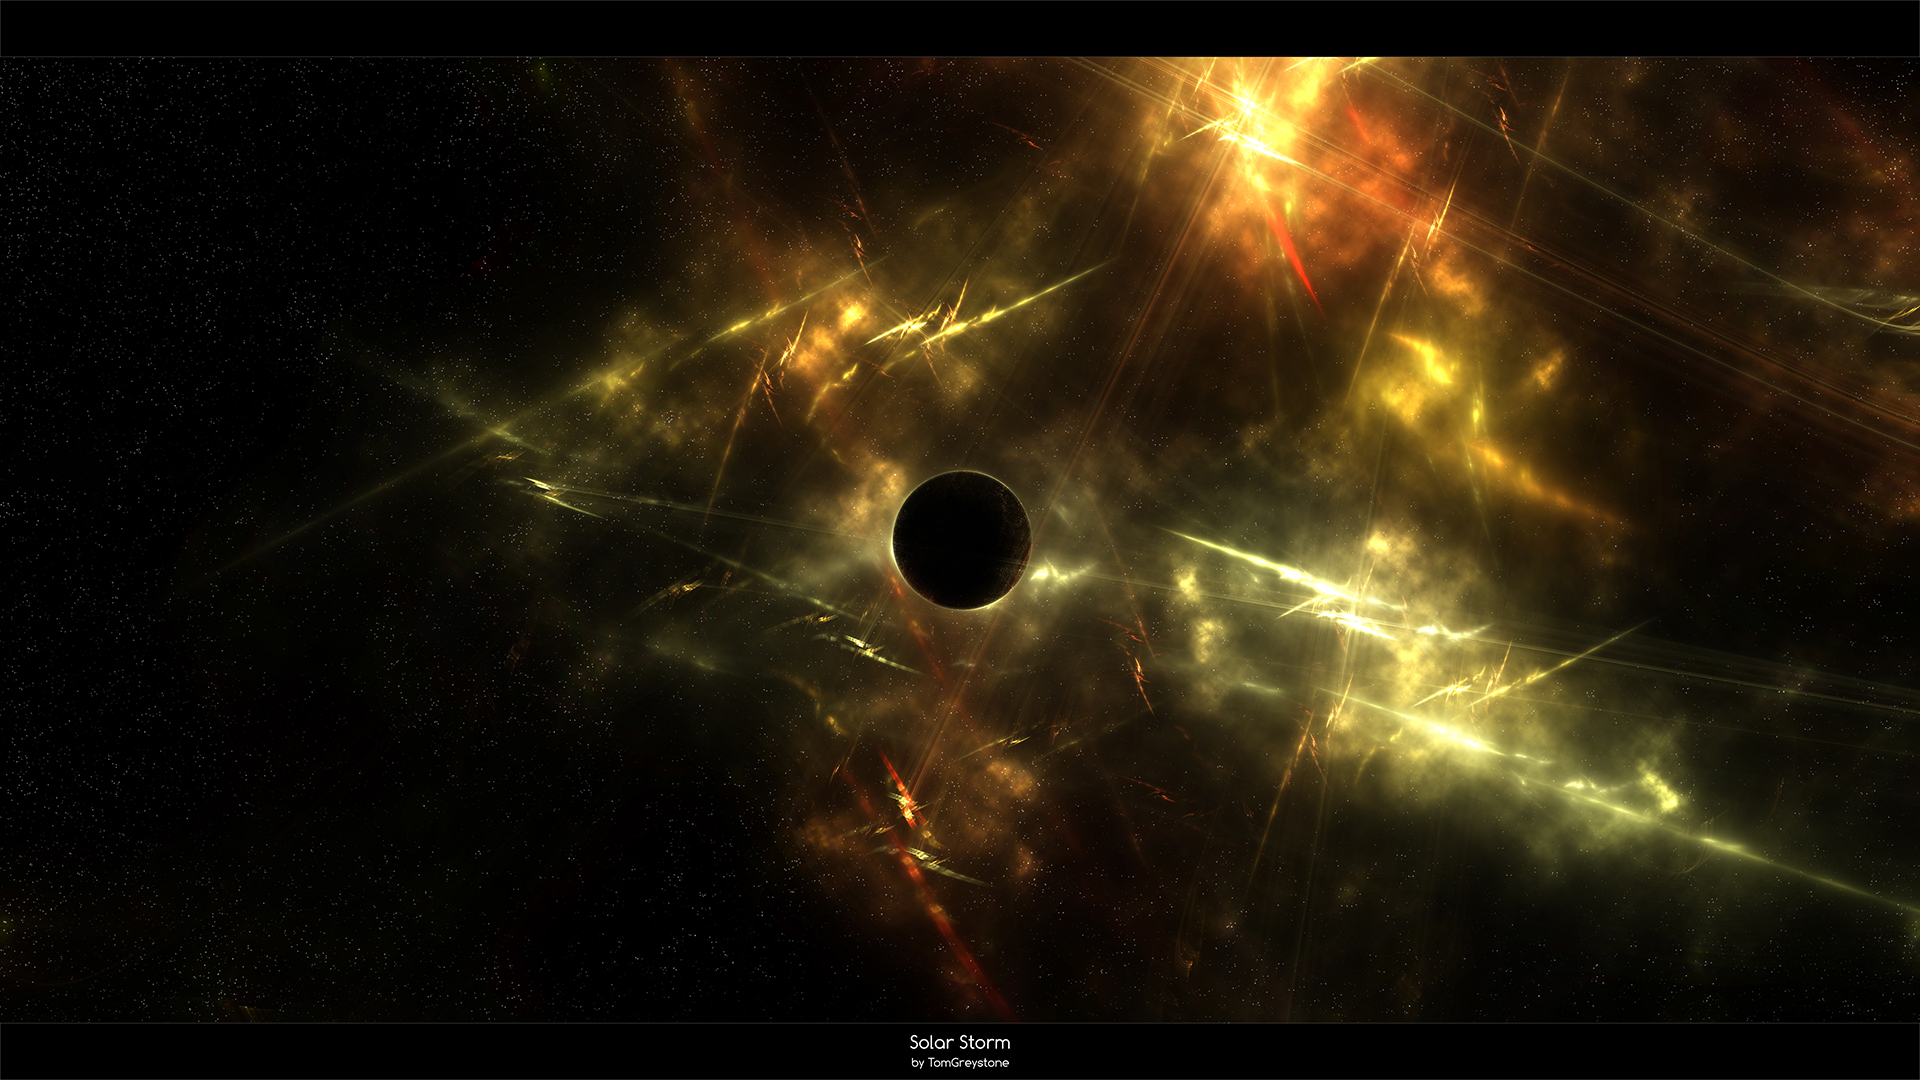 Solar Storm wallpaper by TomGreystone Solar Storm wallpaper by TomGreystone